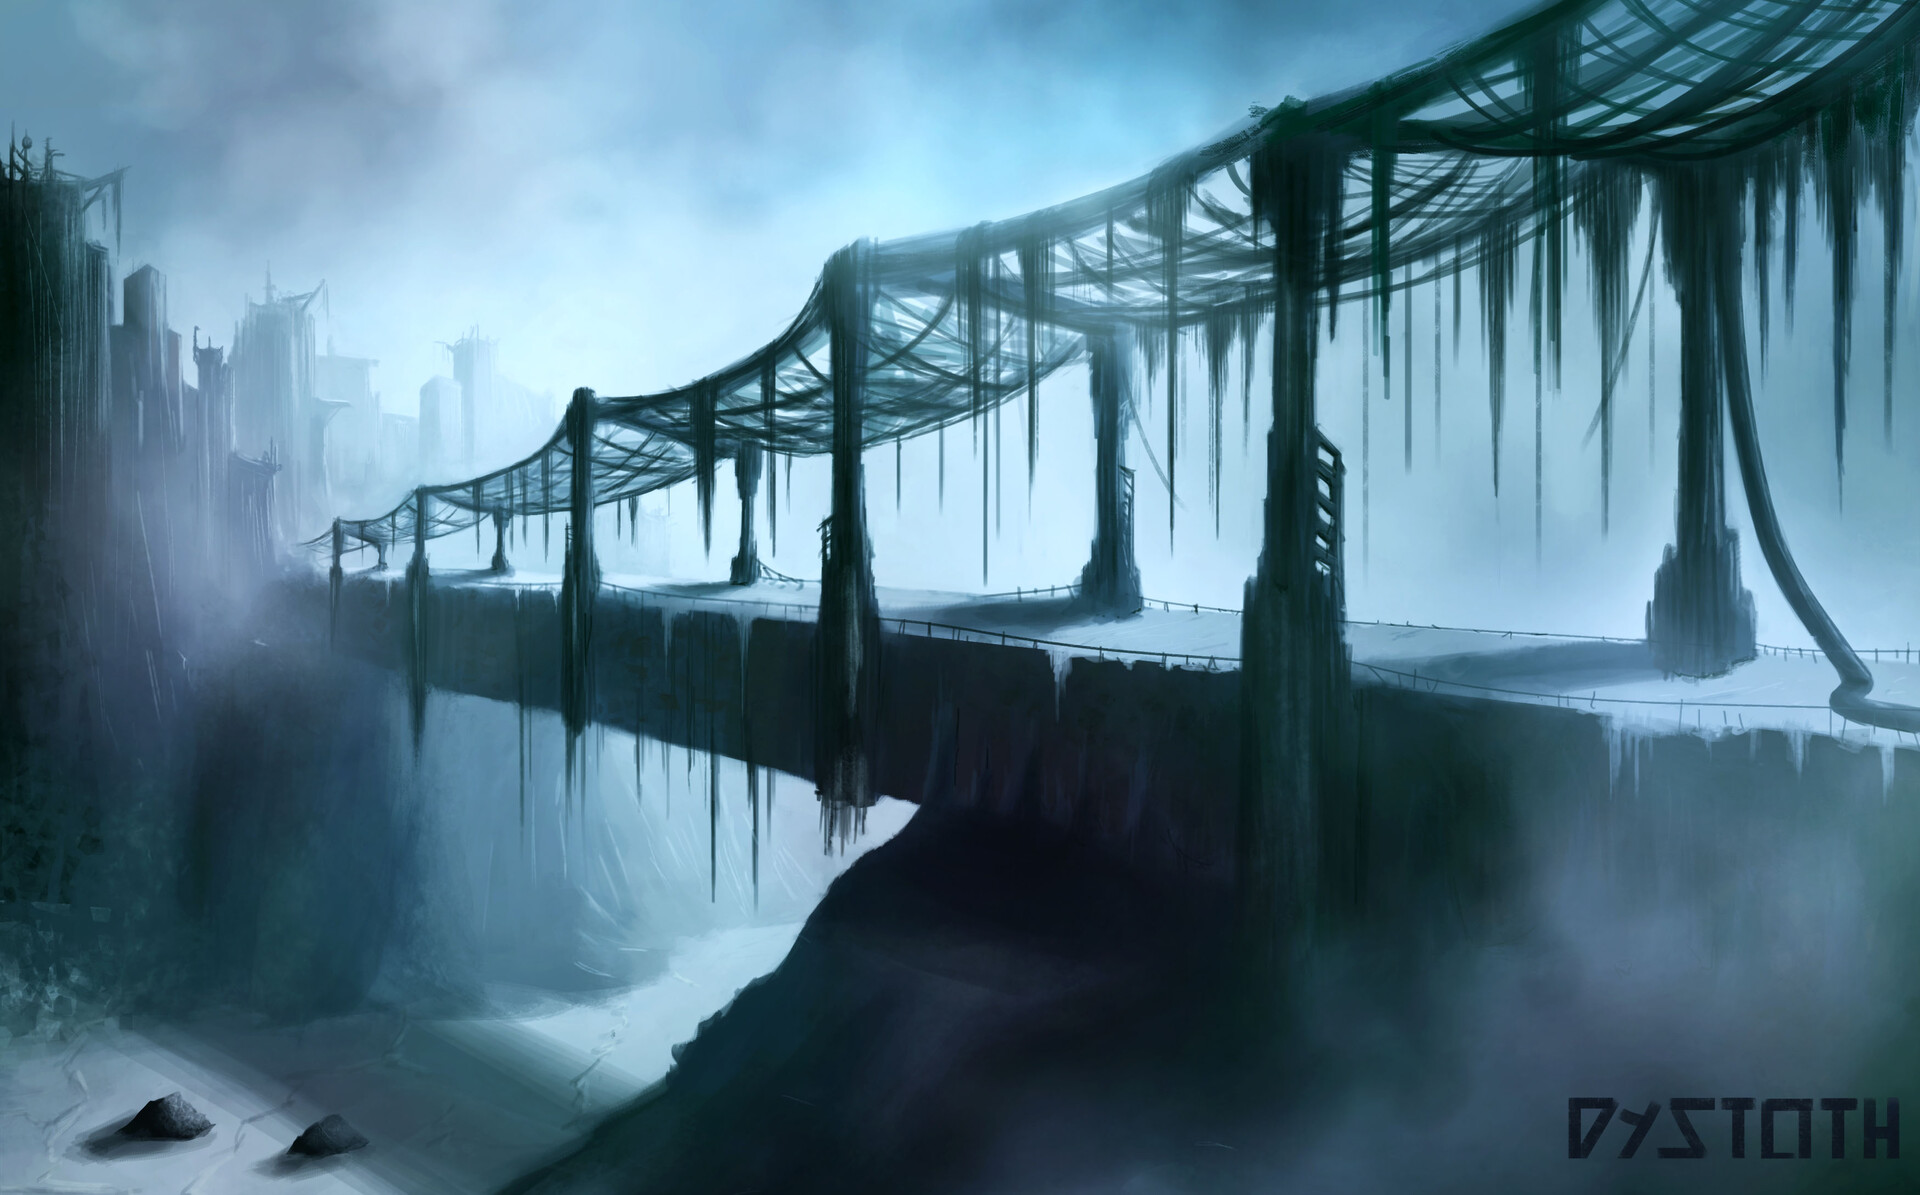 """Frozen mist hung in the air, as still and lifeless as the metal beams suspending our lives as we crossed"""